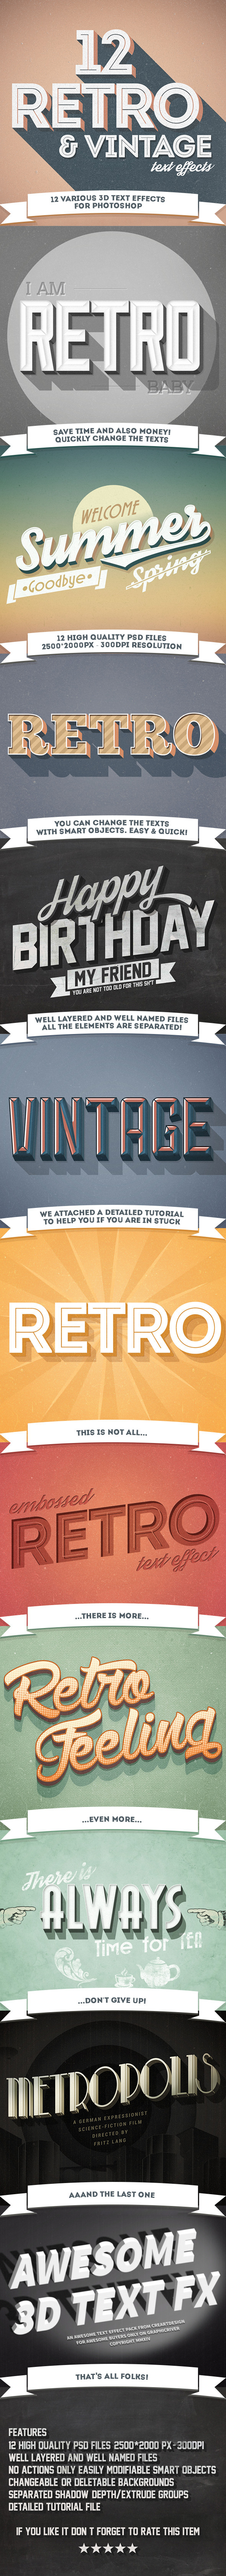 12 Various 3D Retro & Vintage Text Effects for Photoshop - Photoshop Add-ons